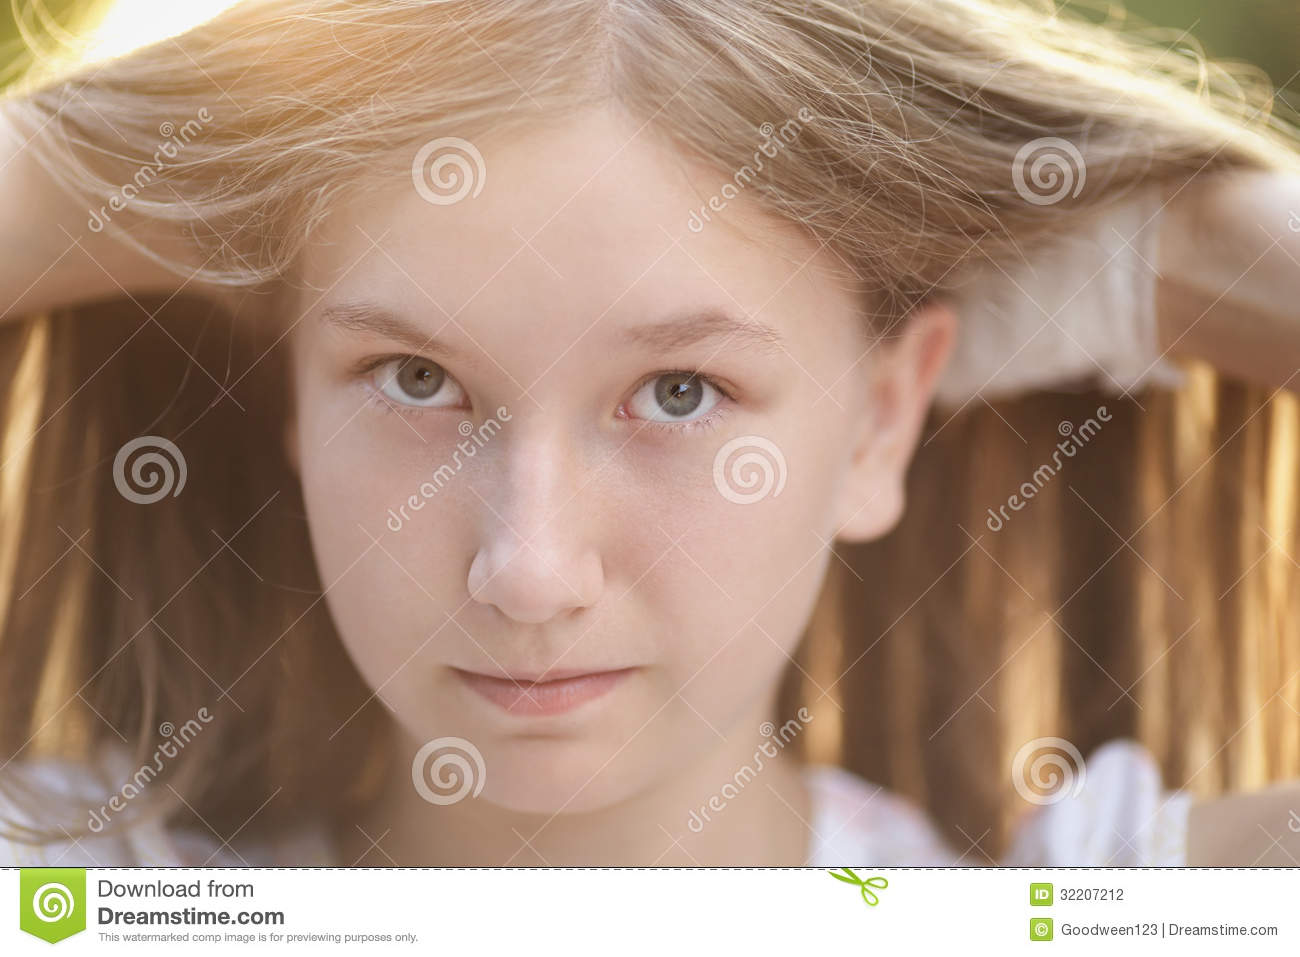 Have appeared Cute teen girl portrait improbable